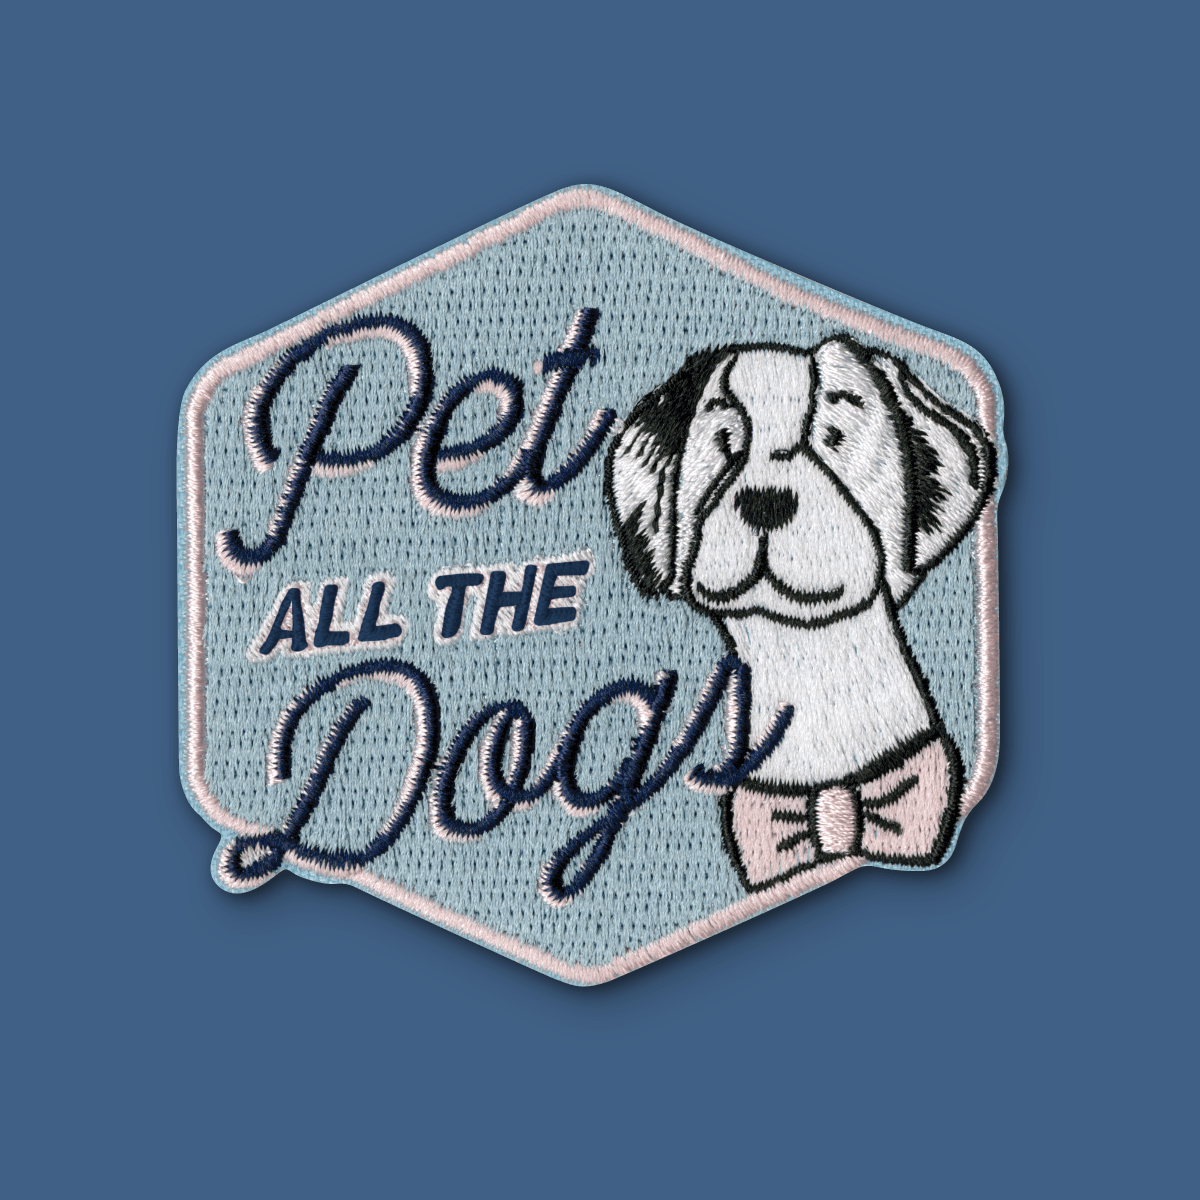 Pet All The Dogs Patch